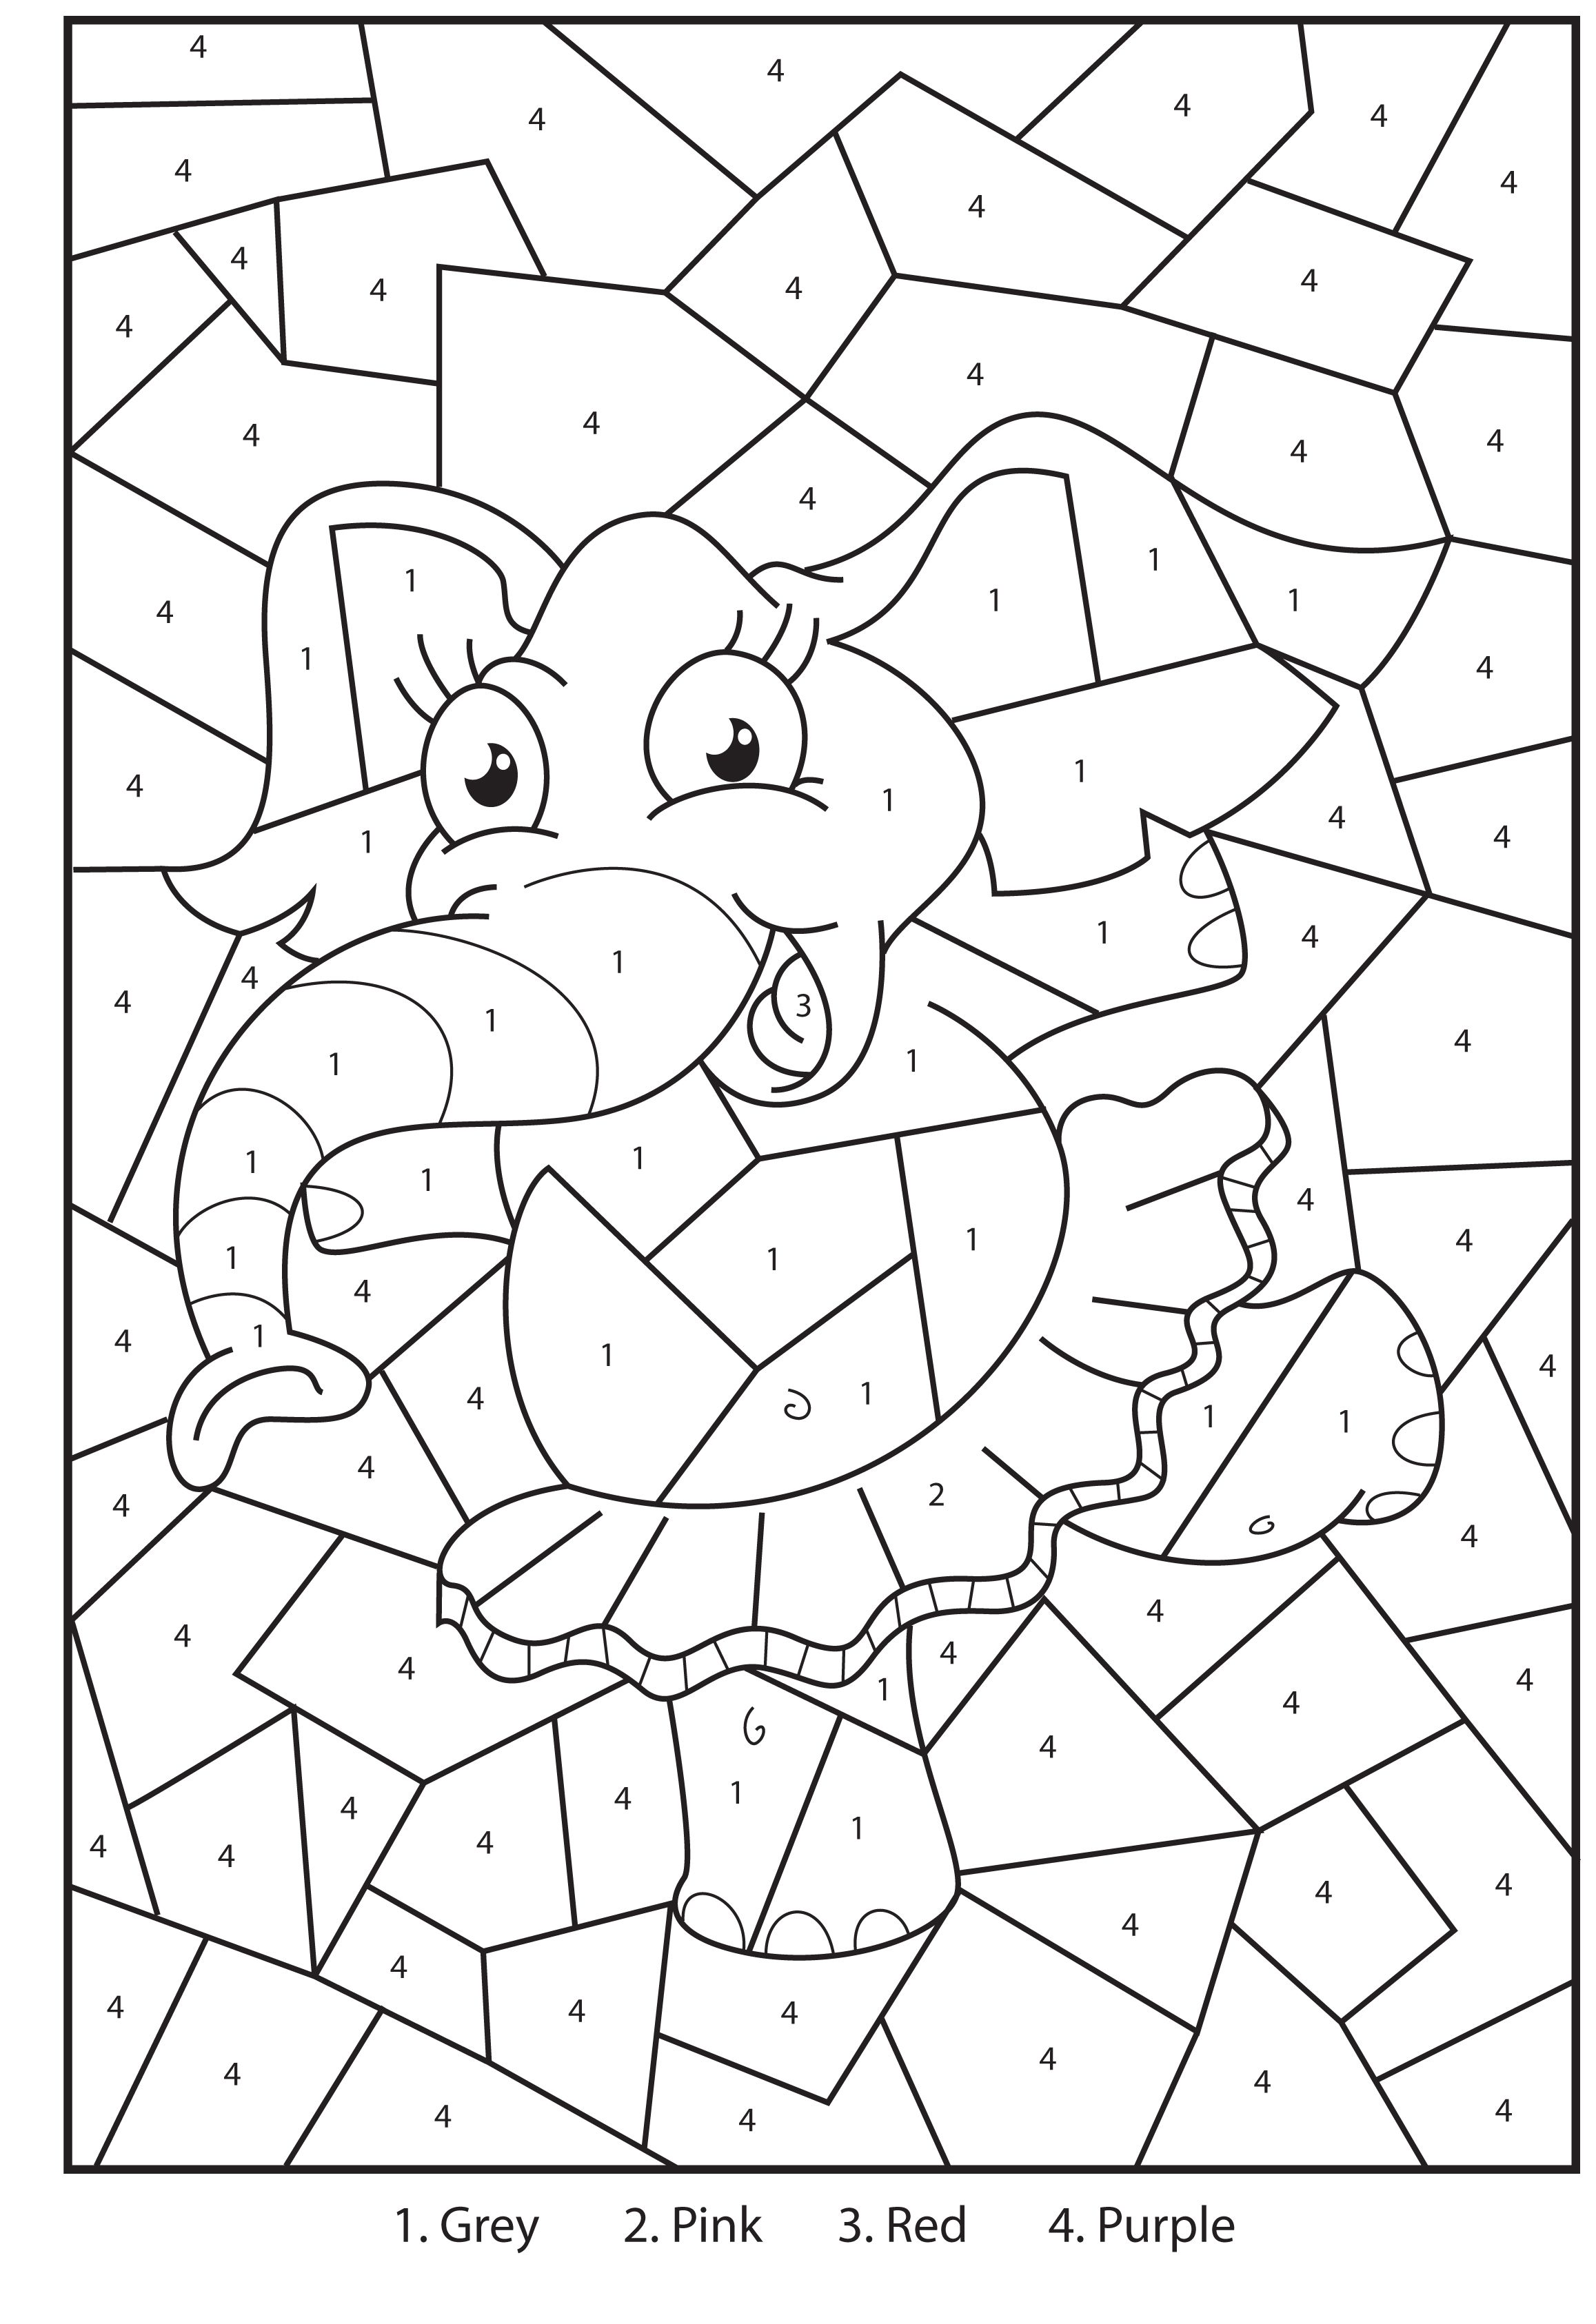 Free Printable Elephant Colour By Numbers Activity For ...